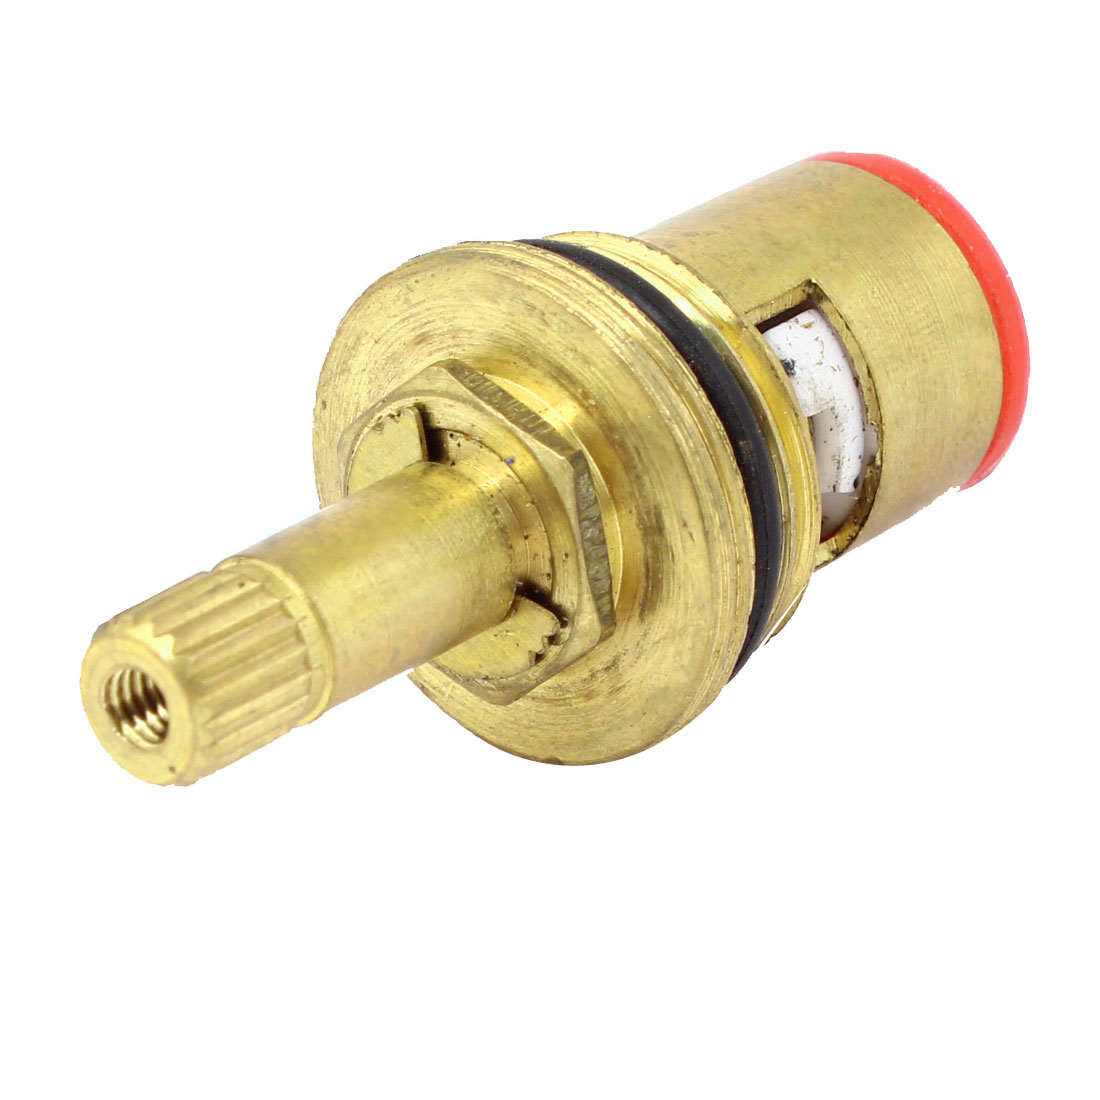 Red Rubber Bottom Home Bathroom Brass Water Faucet Valve Core